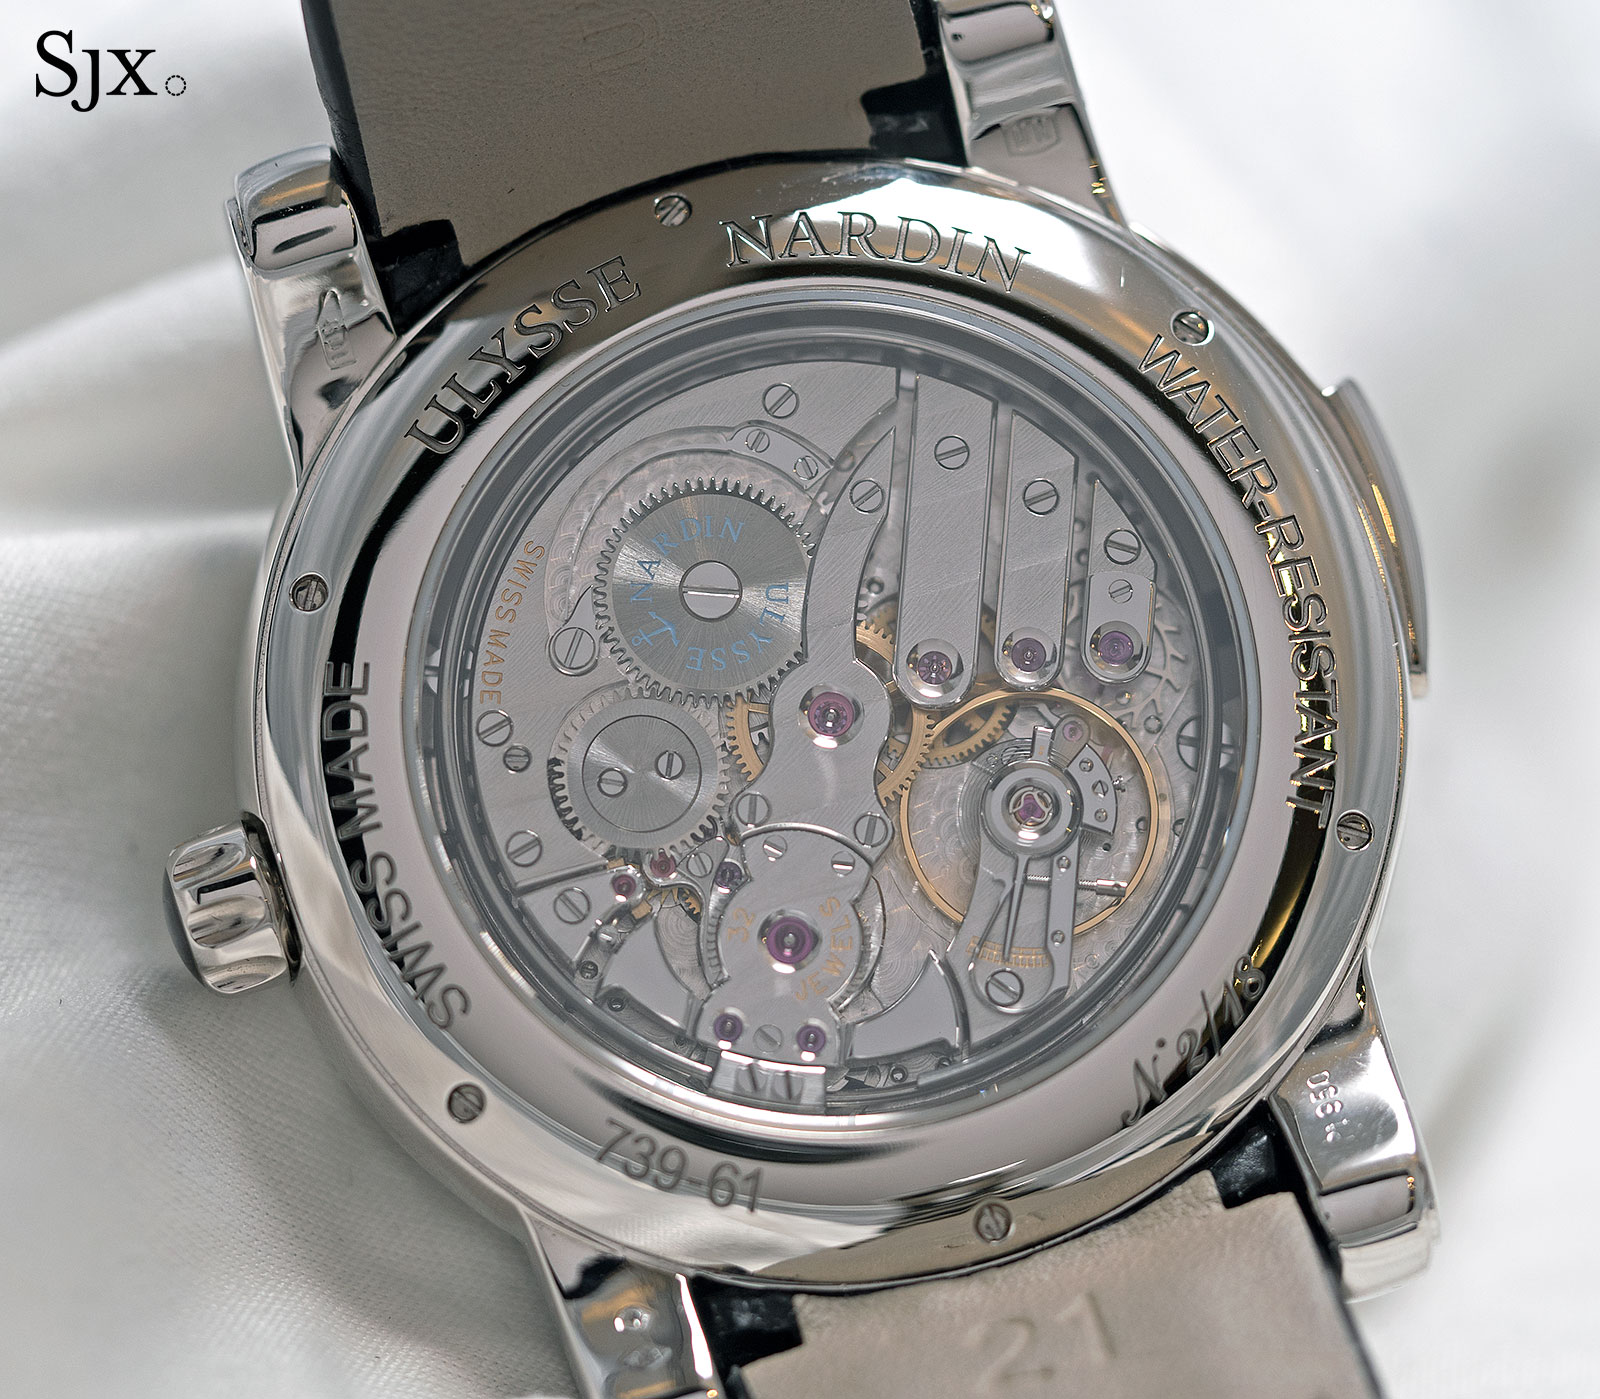 Ulysse Nardin North Sea Minute Repeater 3